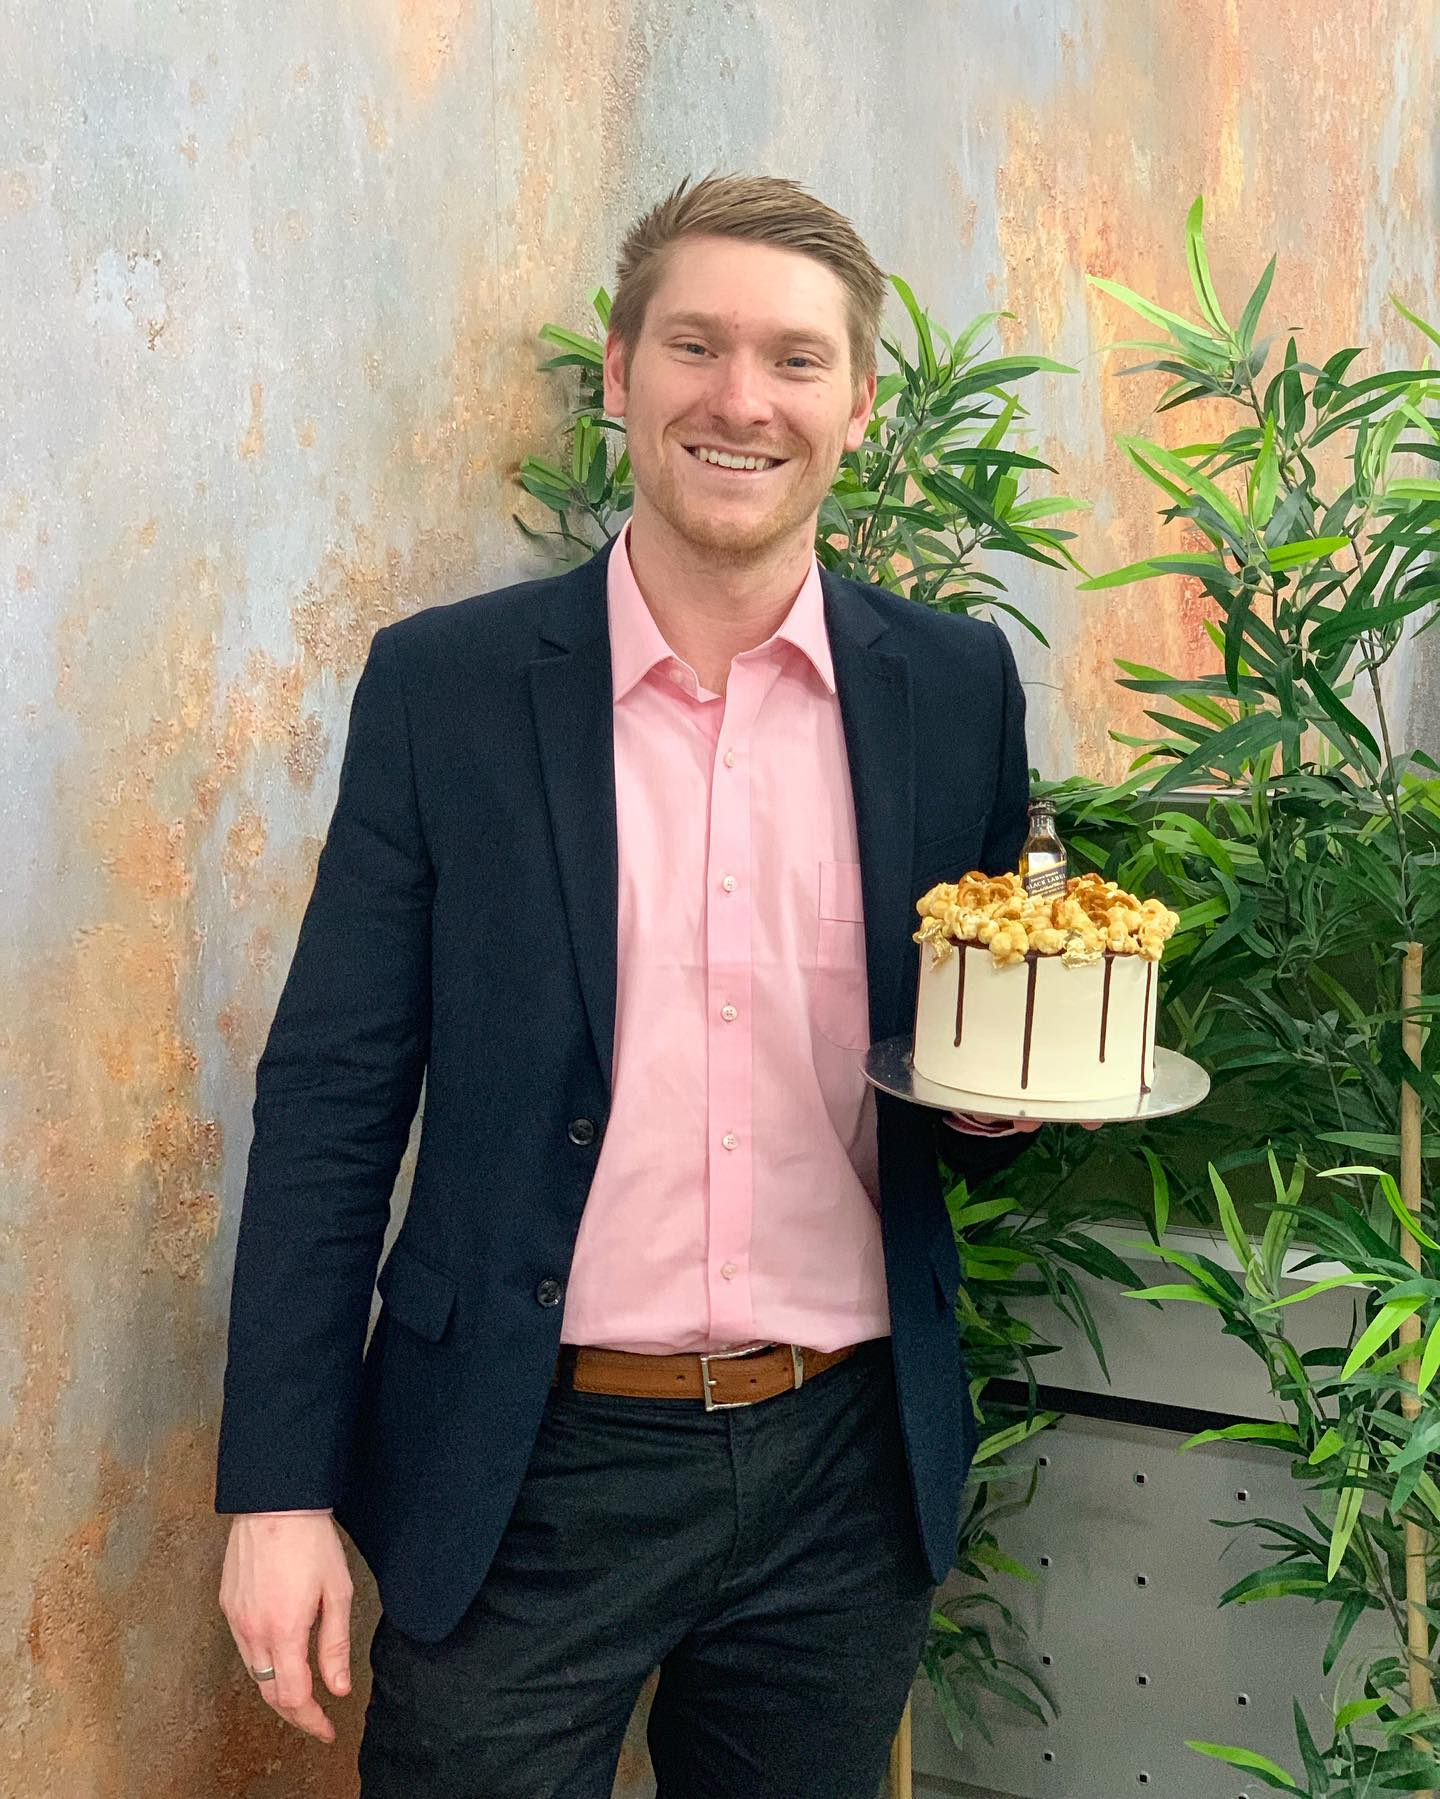 Congratulations to Matt on his 1 year anniversary with us! 🥳 Well done for everything that you have achieved in the last 12 months! We love having you on the team and can't wait to see what else you achieve on your journey with us.